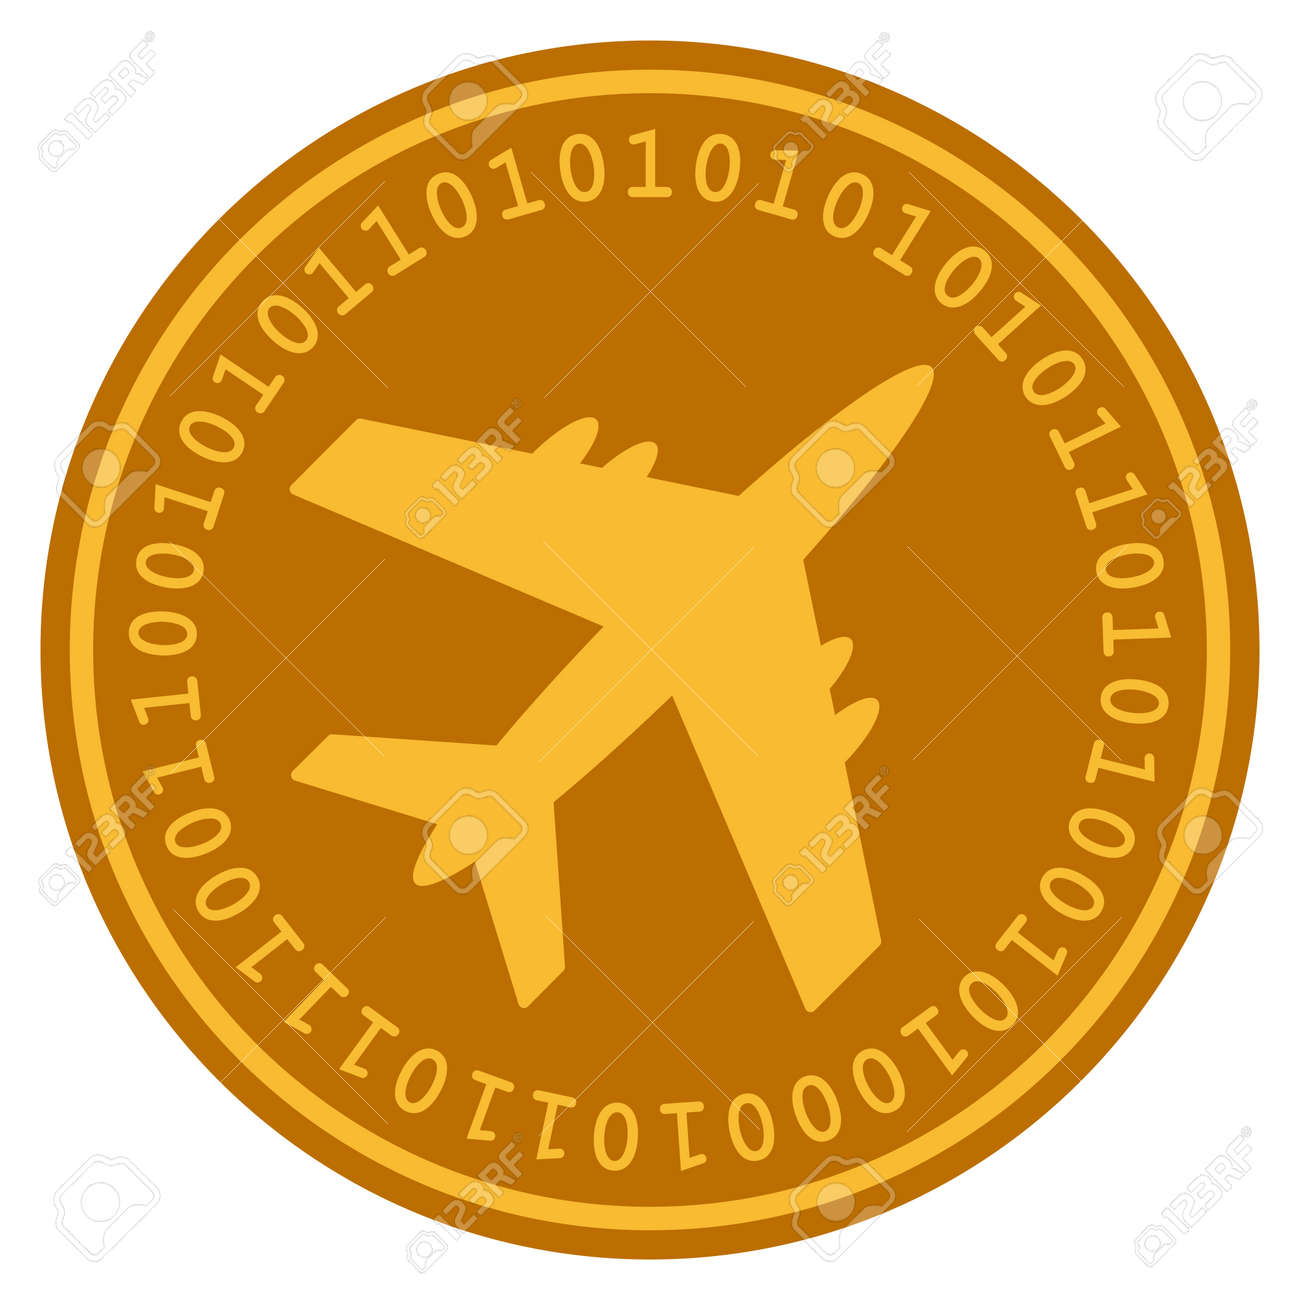 buy an airplane with cryptocurrency